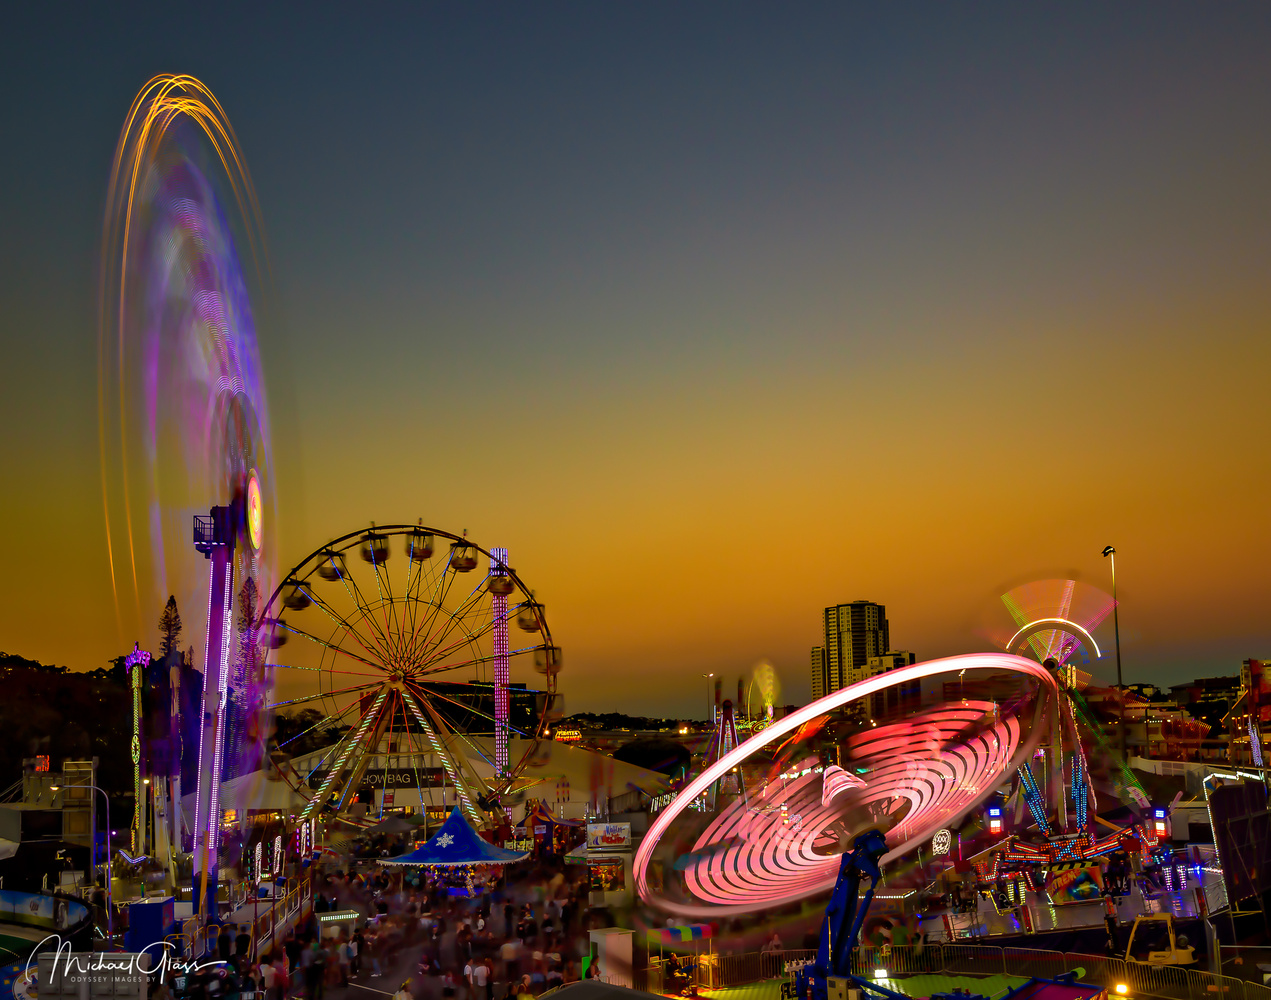 Sunset Fairground by Mick Glass